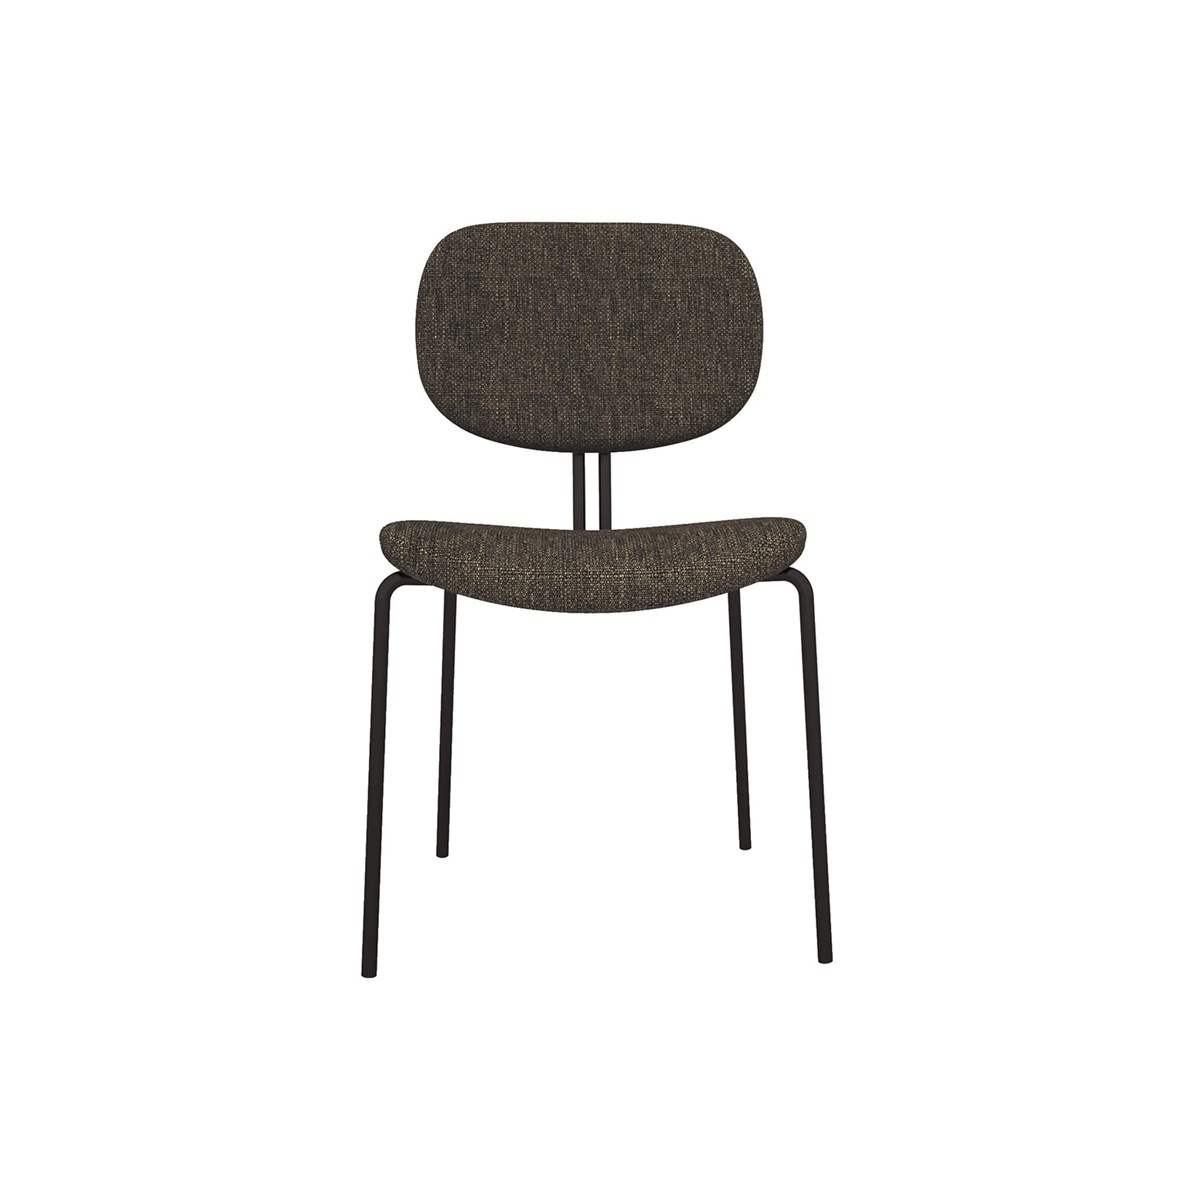 Neospace-Panama-Chair-Contract-Matisse-1 (1)